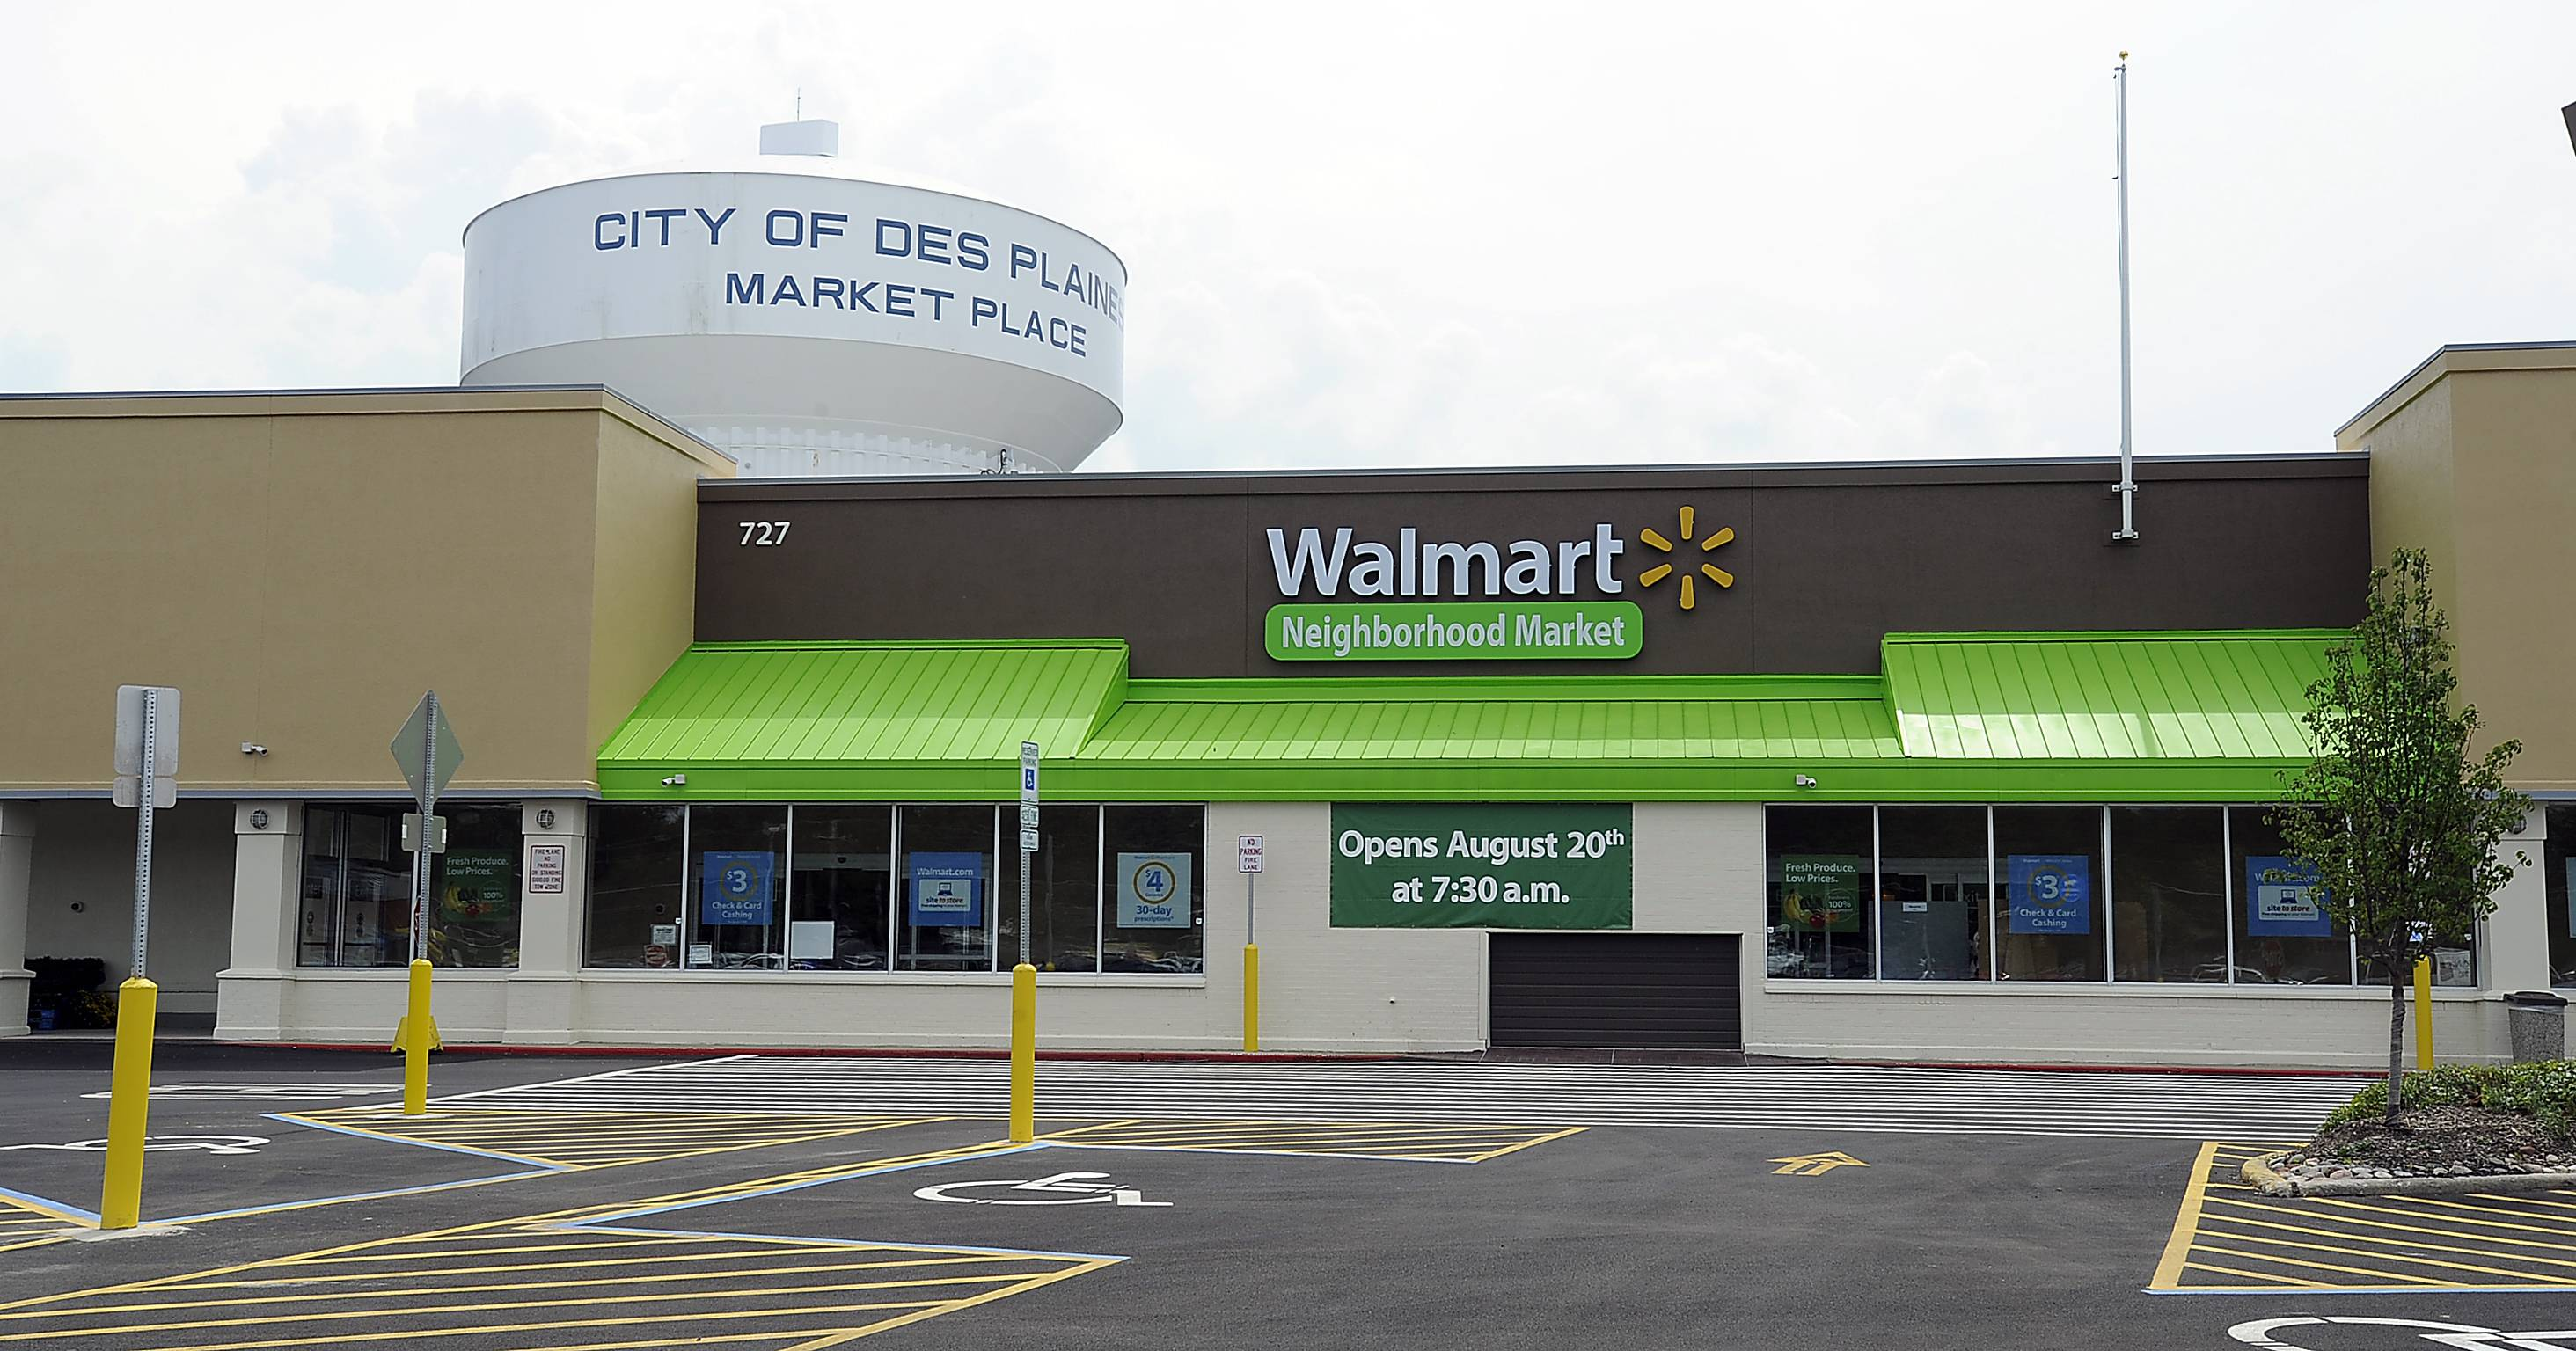 The suburbs' first Walmart Neighborhood Market opens at 7:30 a.m. today at 727 W. Golf Road in Des Plaines.